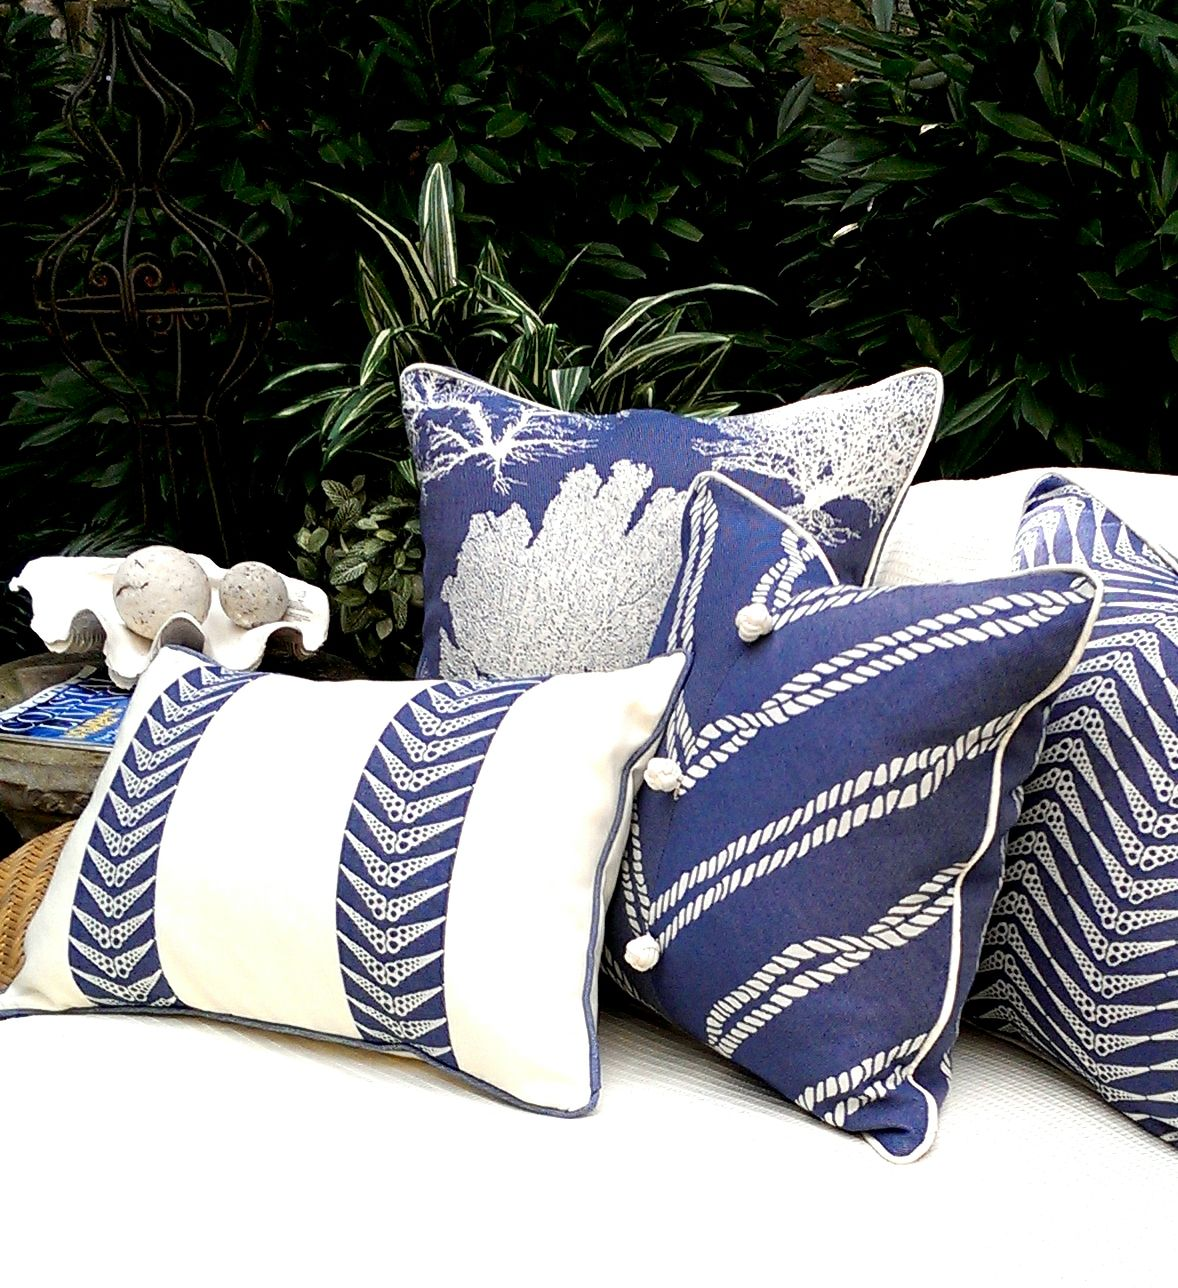 outdoor pillow and burlap wholesale cases buy chinese blue vacation get throw decor beach plant free word home on pillows w shipping aliexpress cushion com style